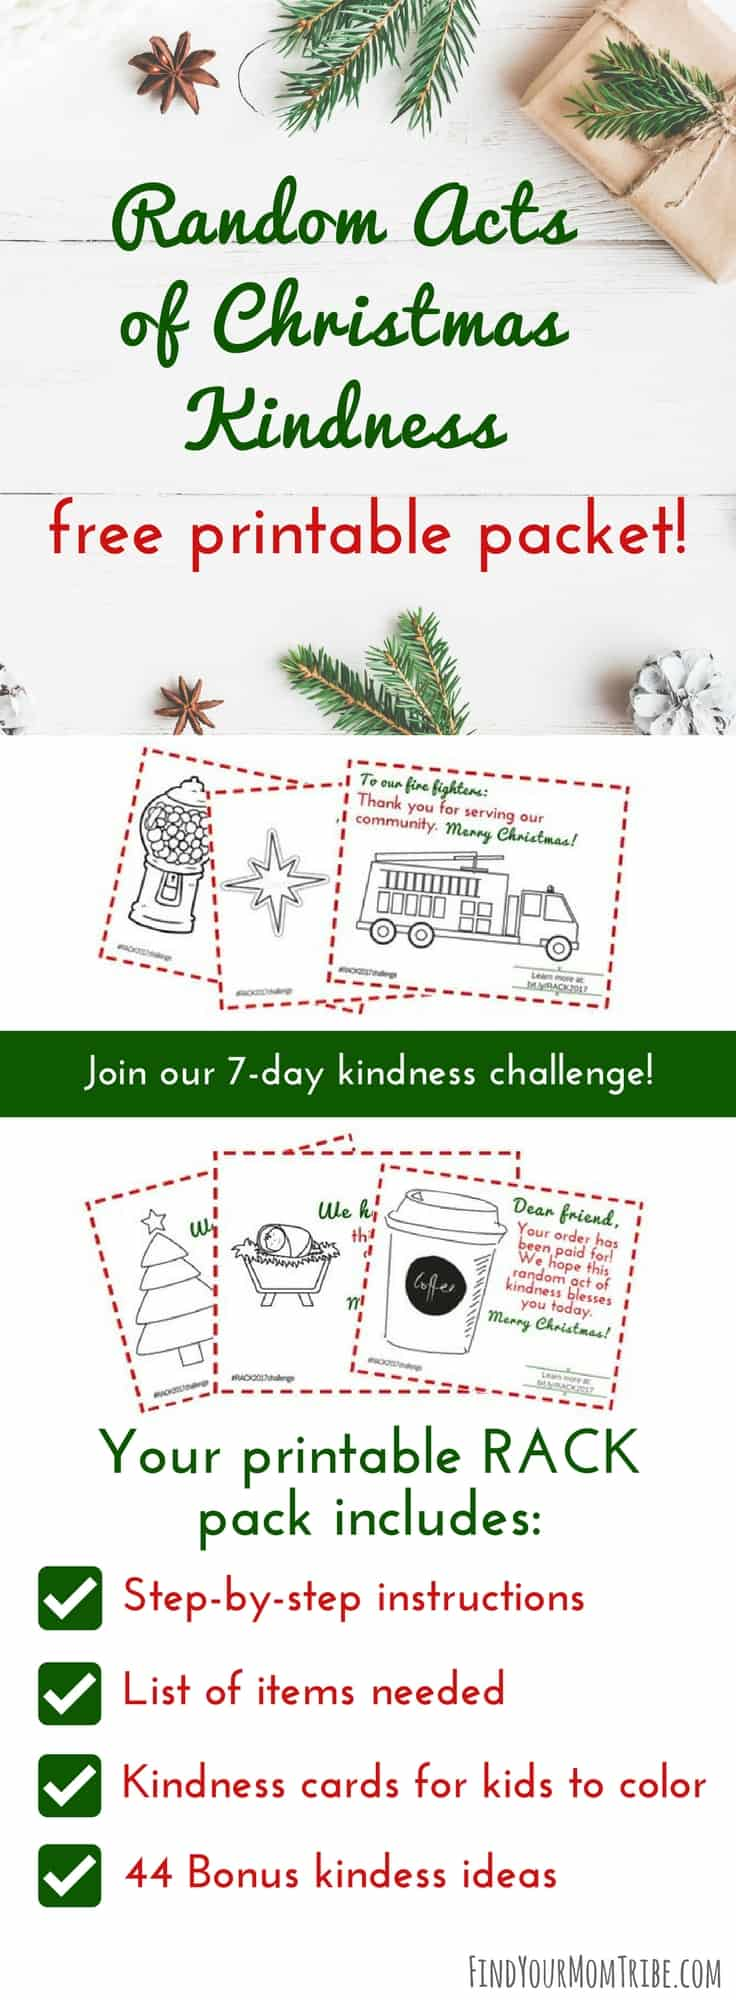 Be intentional this Christmas season and spread Random Acts of Christmas Kindness! Click here to get your free Random Acts of Kindness packet! It includes 20 pages of kindness ideas, step-by-step directions, and free kindness cards. #Christmas #Christmas2017 #Christmasideas #RandomActsofKindness #freeprintable #freeprintables #freeChristmasprintables